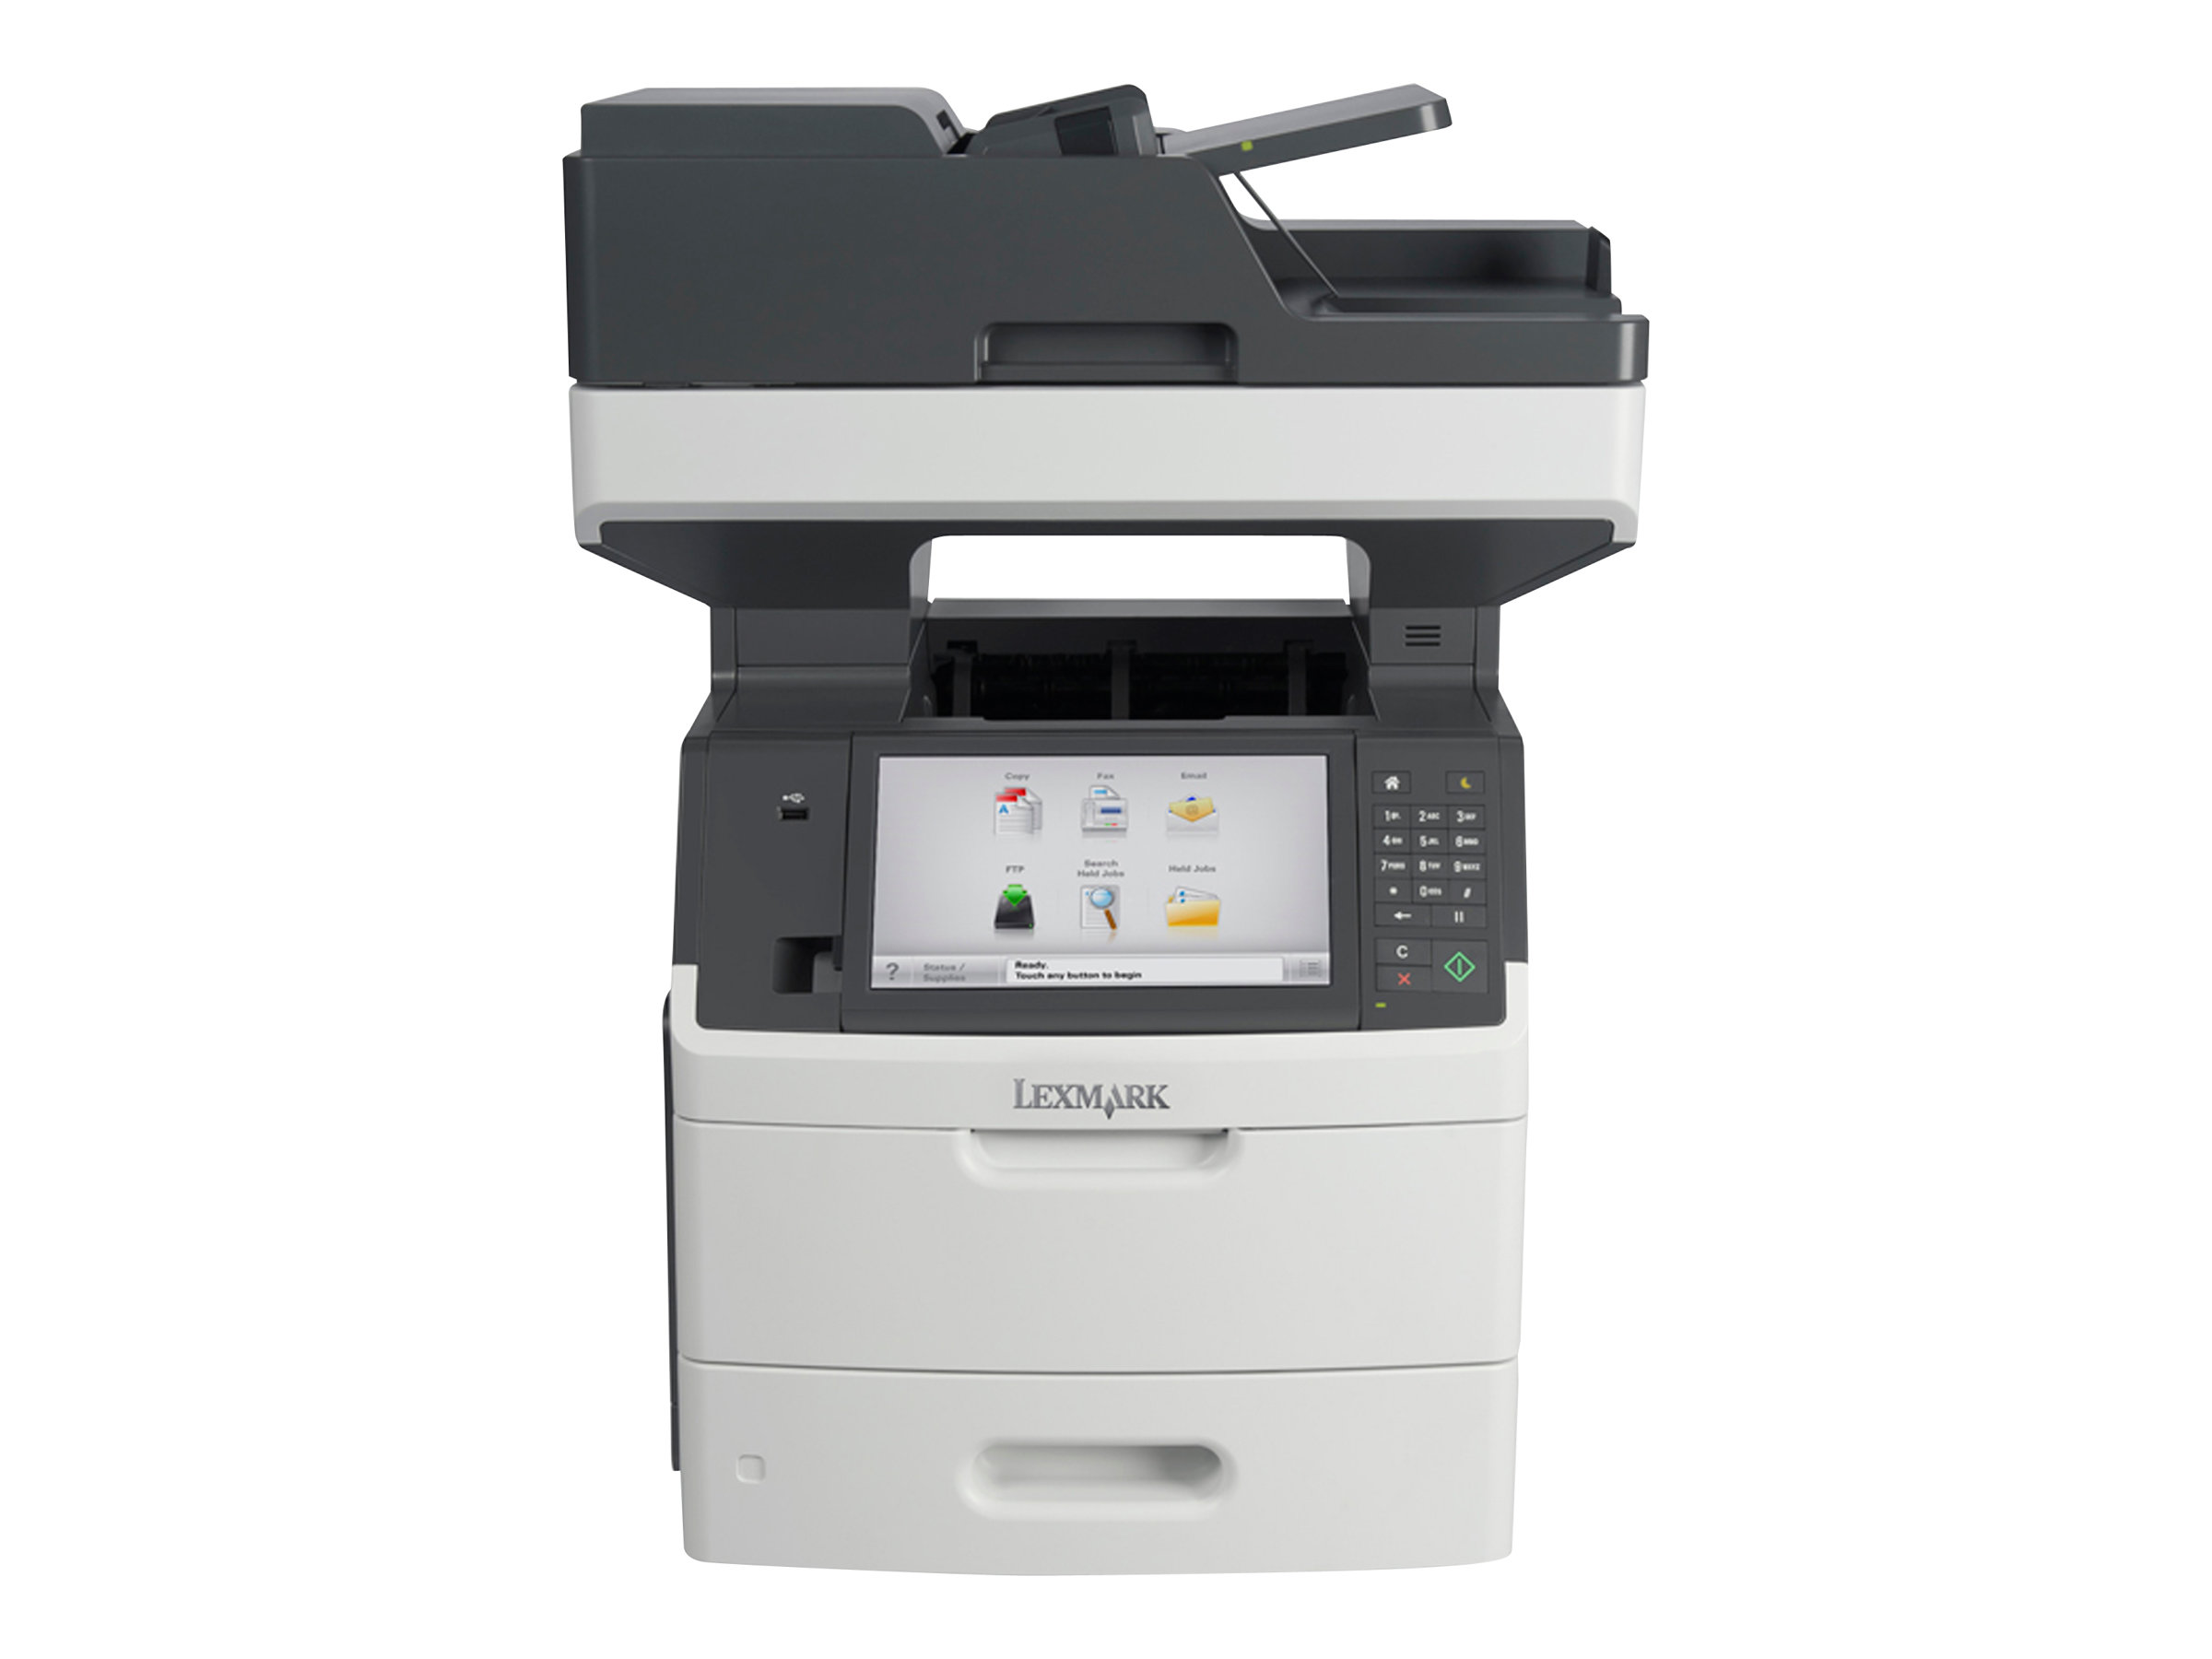 Lexmark MX711dhe - Imprimante multifonctions - Noir et blanc - laser - Legal (216 x 356 mm) (original) - Legal (support) - jusqu'à 66 ppm (copie) - jusqu'à 66 ppm (impression) - 650 feuilles - 33.6 Kbits/s - USB 2.0, Gigabit LAN, hôte USB